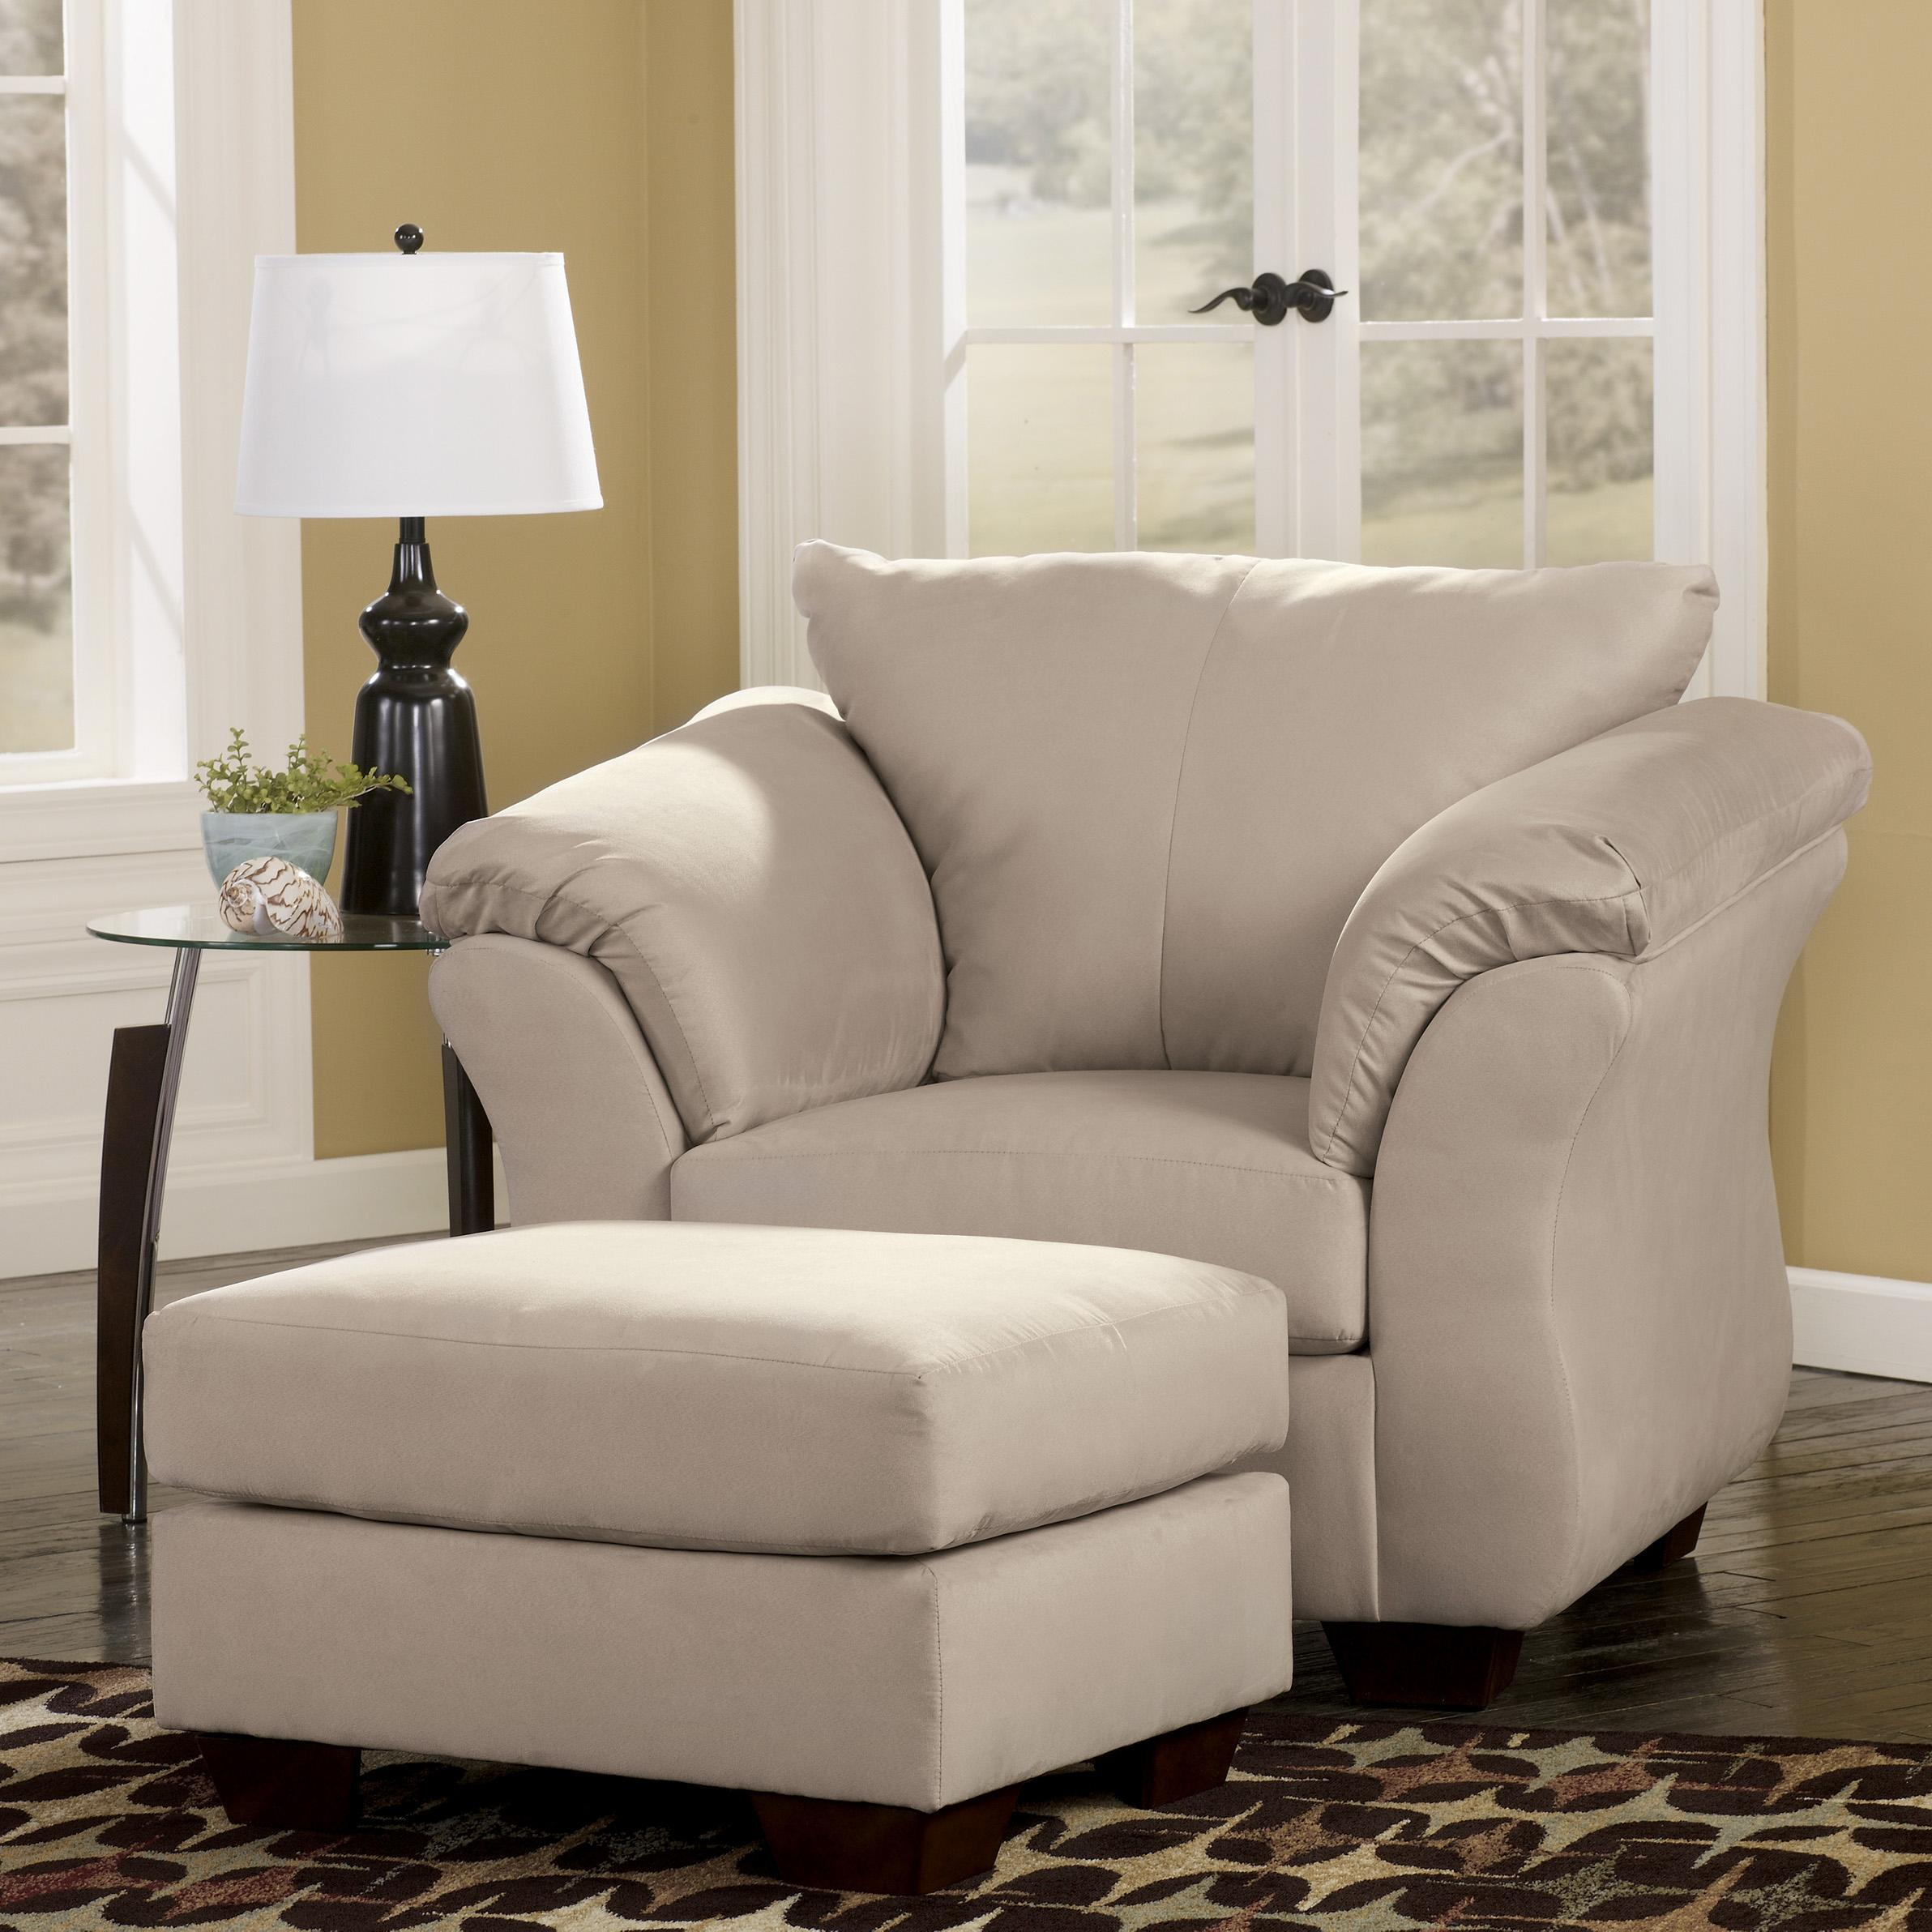 Upholstered Chair And Ottoman contemporary upholstered chair and ottoman with tapered legs